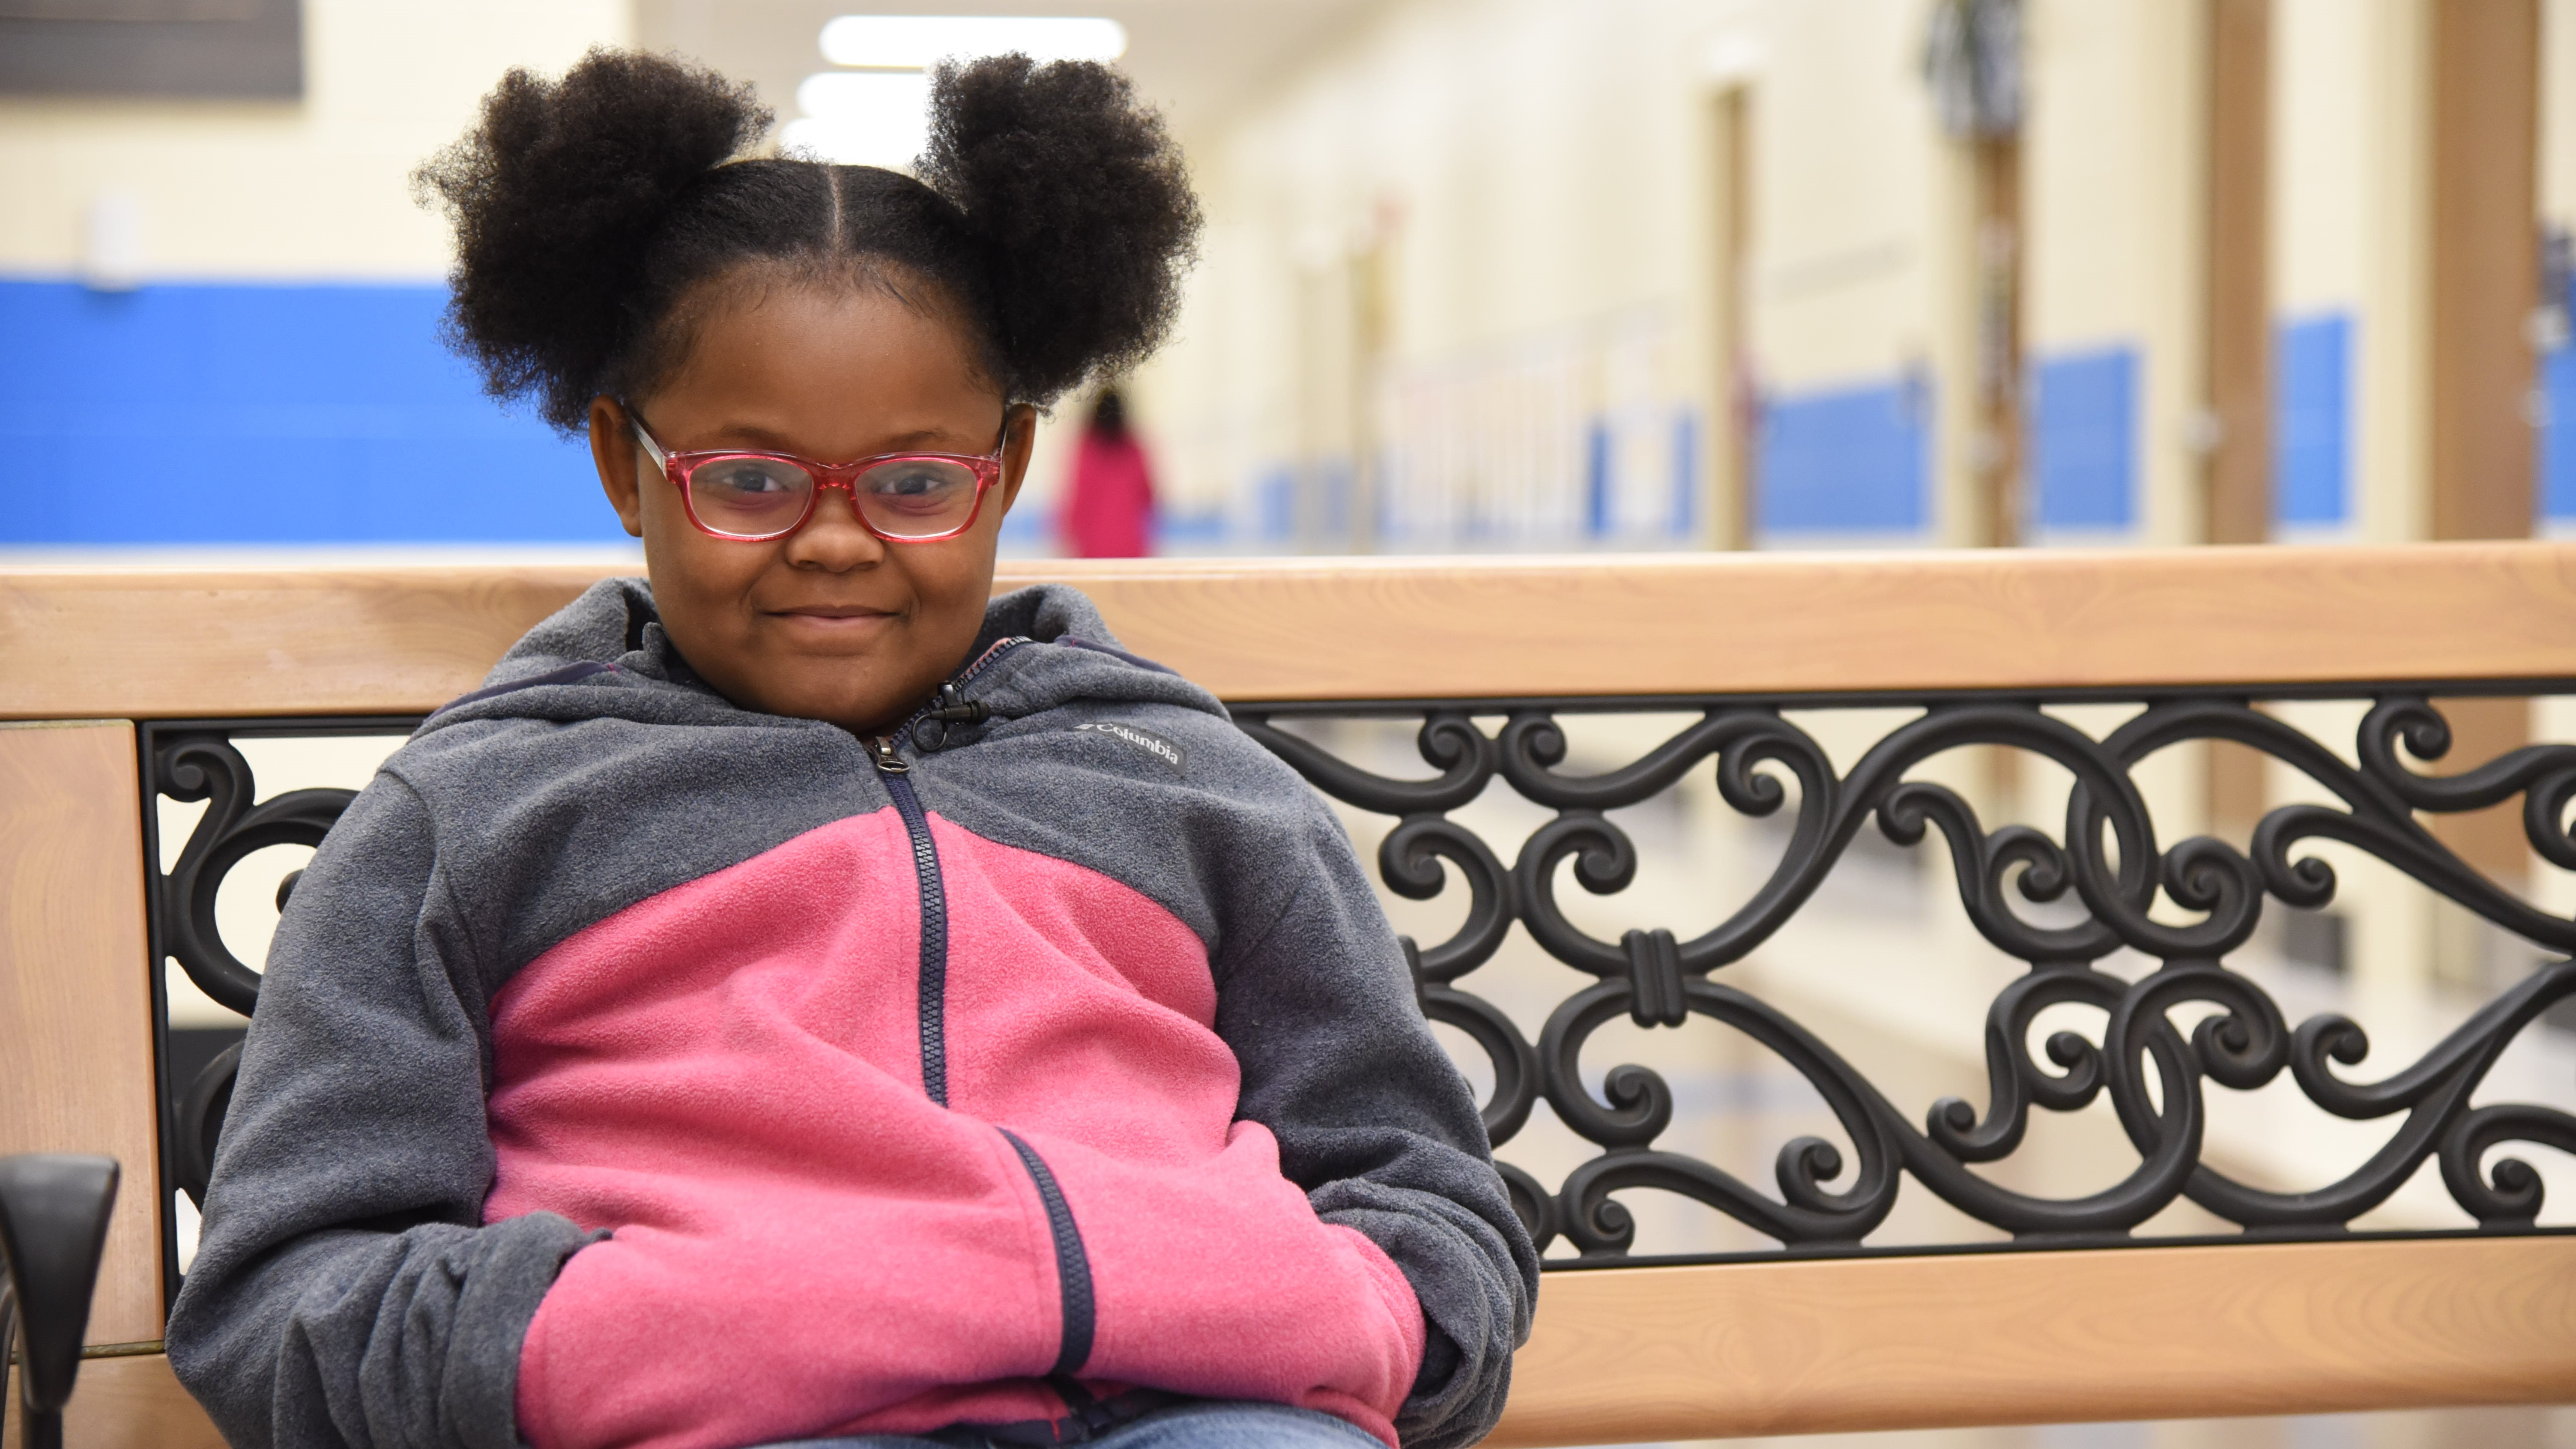 Kaelyn Martin, a 2nd-grade student at Inskip Elementary, says the school's bedtime story videos are fun, and help her fall asleep.